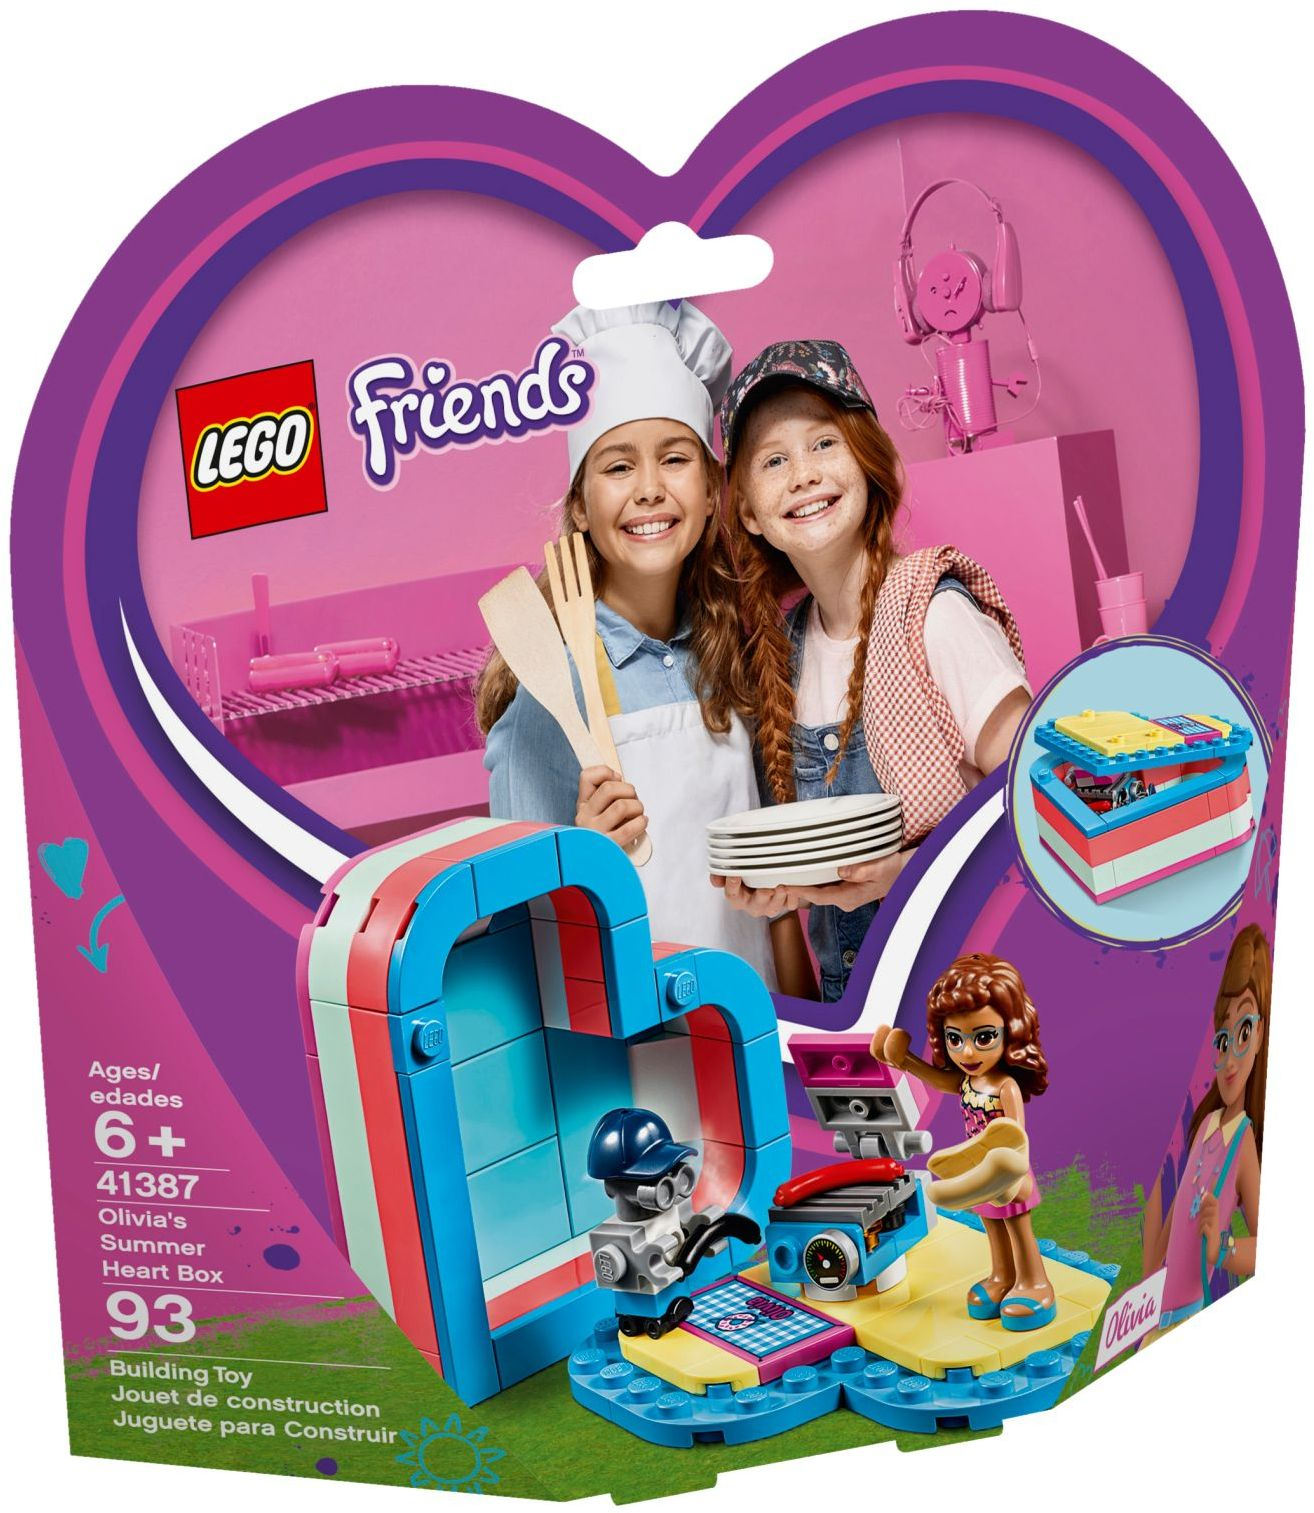 41388 Lego Friends Mia/'s Summer Heart Box Building Set